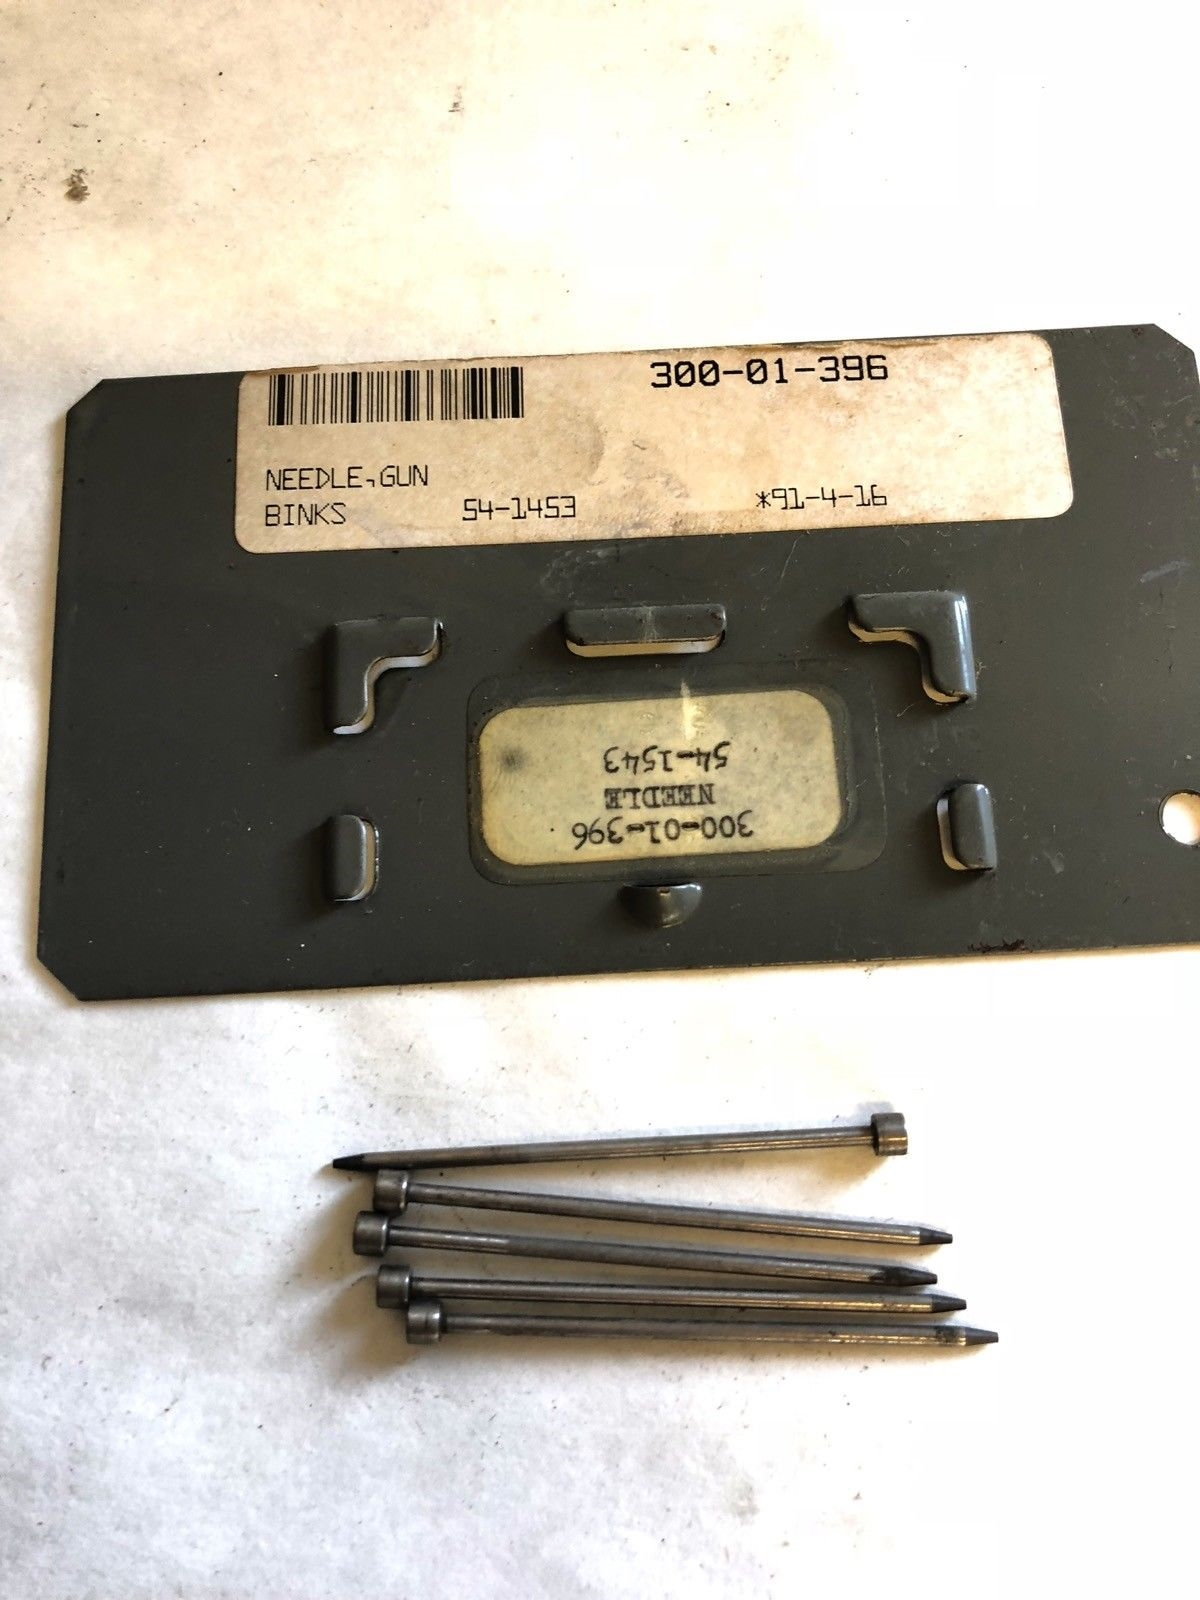 LOT OF 5 NEW BINKS 4-1453 REPLACEMENT NEEDLE FOR SPRAY GUN, FAST SHIP! (A739) 1